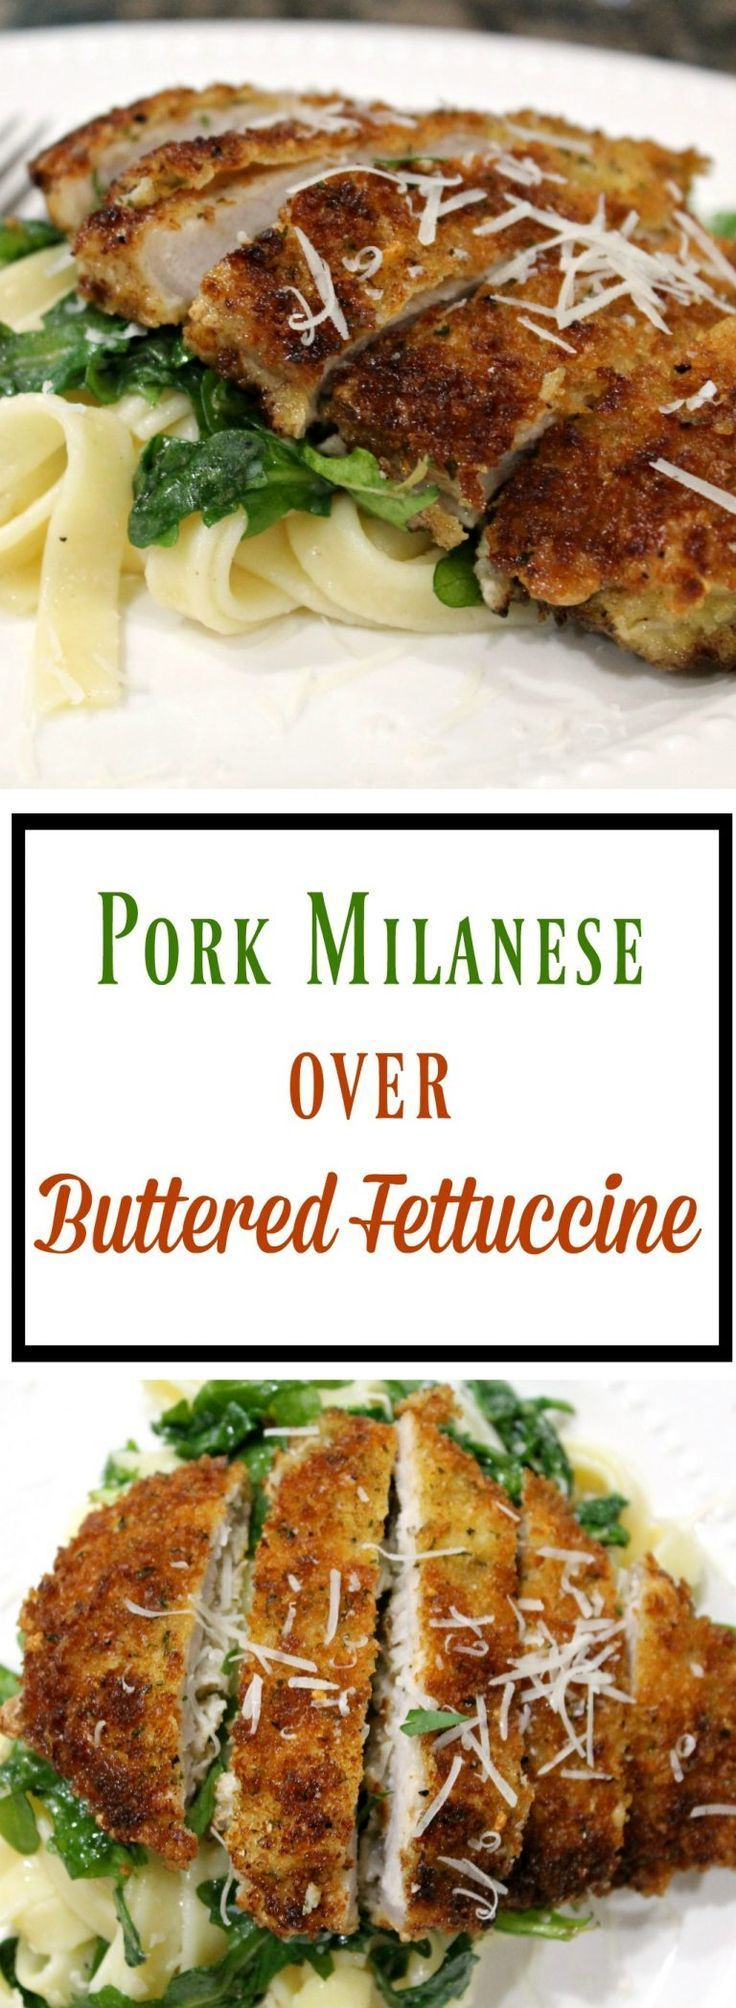 Pork Milanese Over Buttered Fettuccine - I ALWAYS ORDER SOMETHING LIKE THIS IN RESTAURANTS, IT'S SO EXCITING TO BE ABLE TO MAKE RESTAURANT QUALITY MEALS AT HOME, AND HOW EASY IT IS!